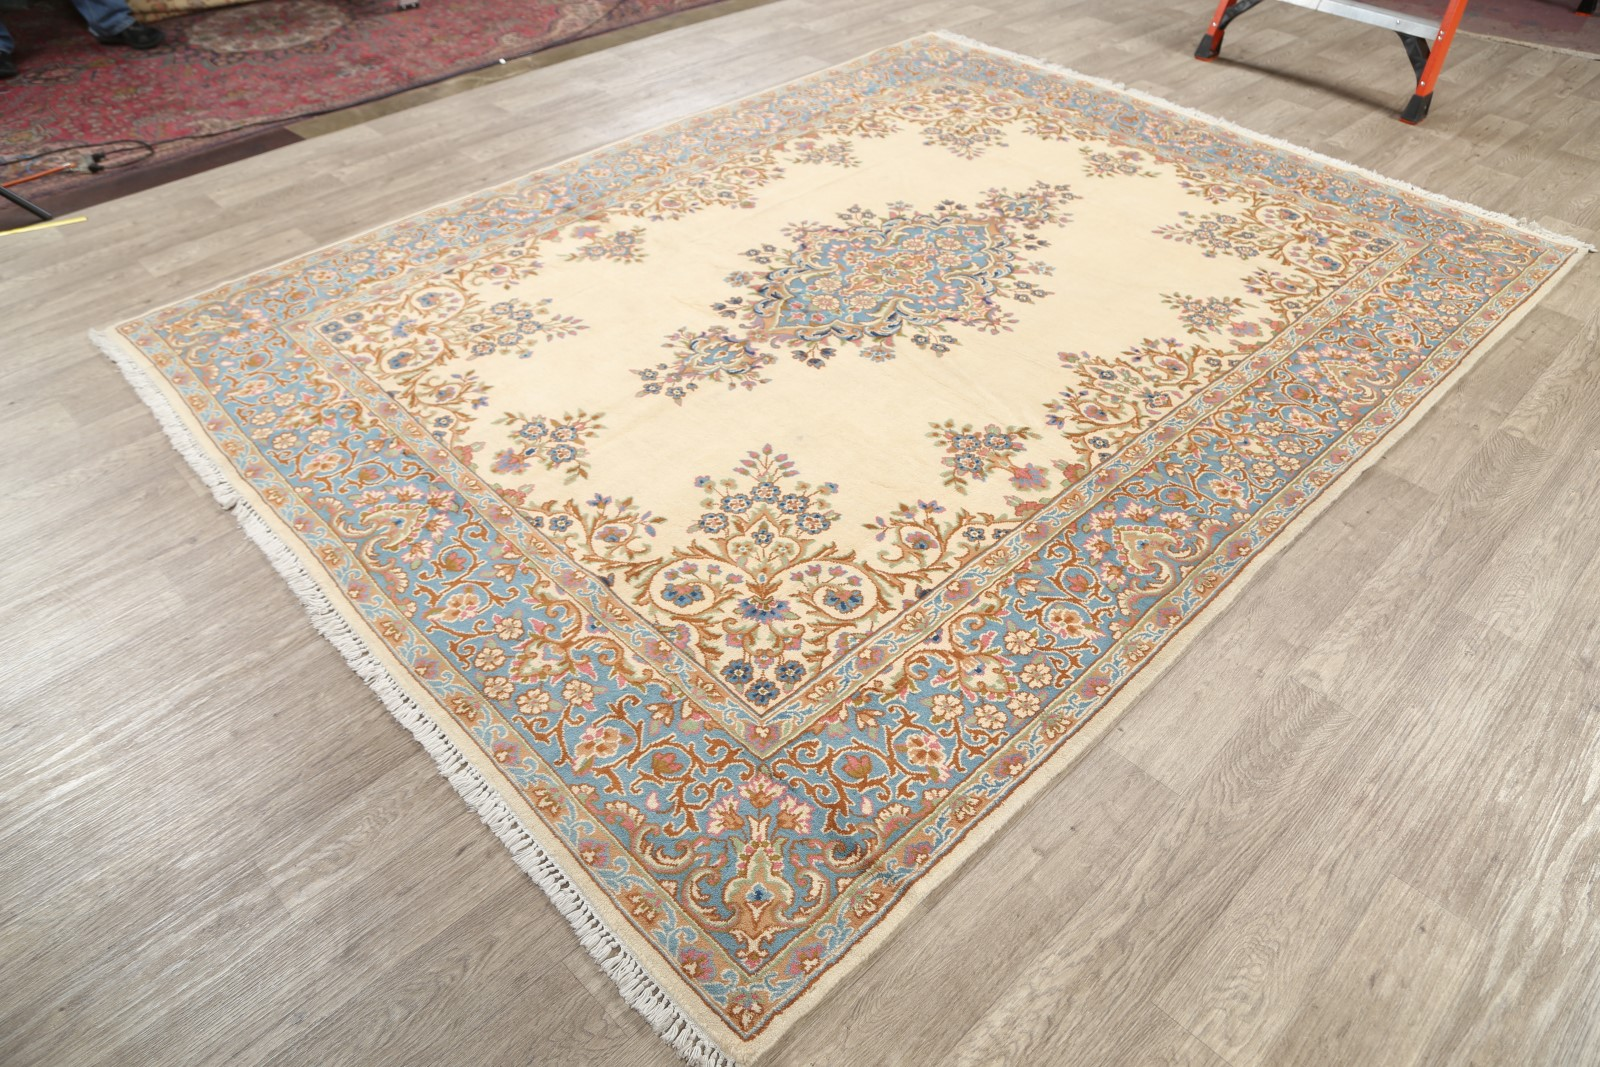 8x10 Kerman Persian Area Rug